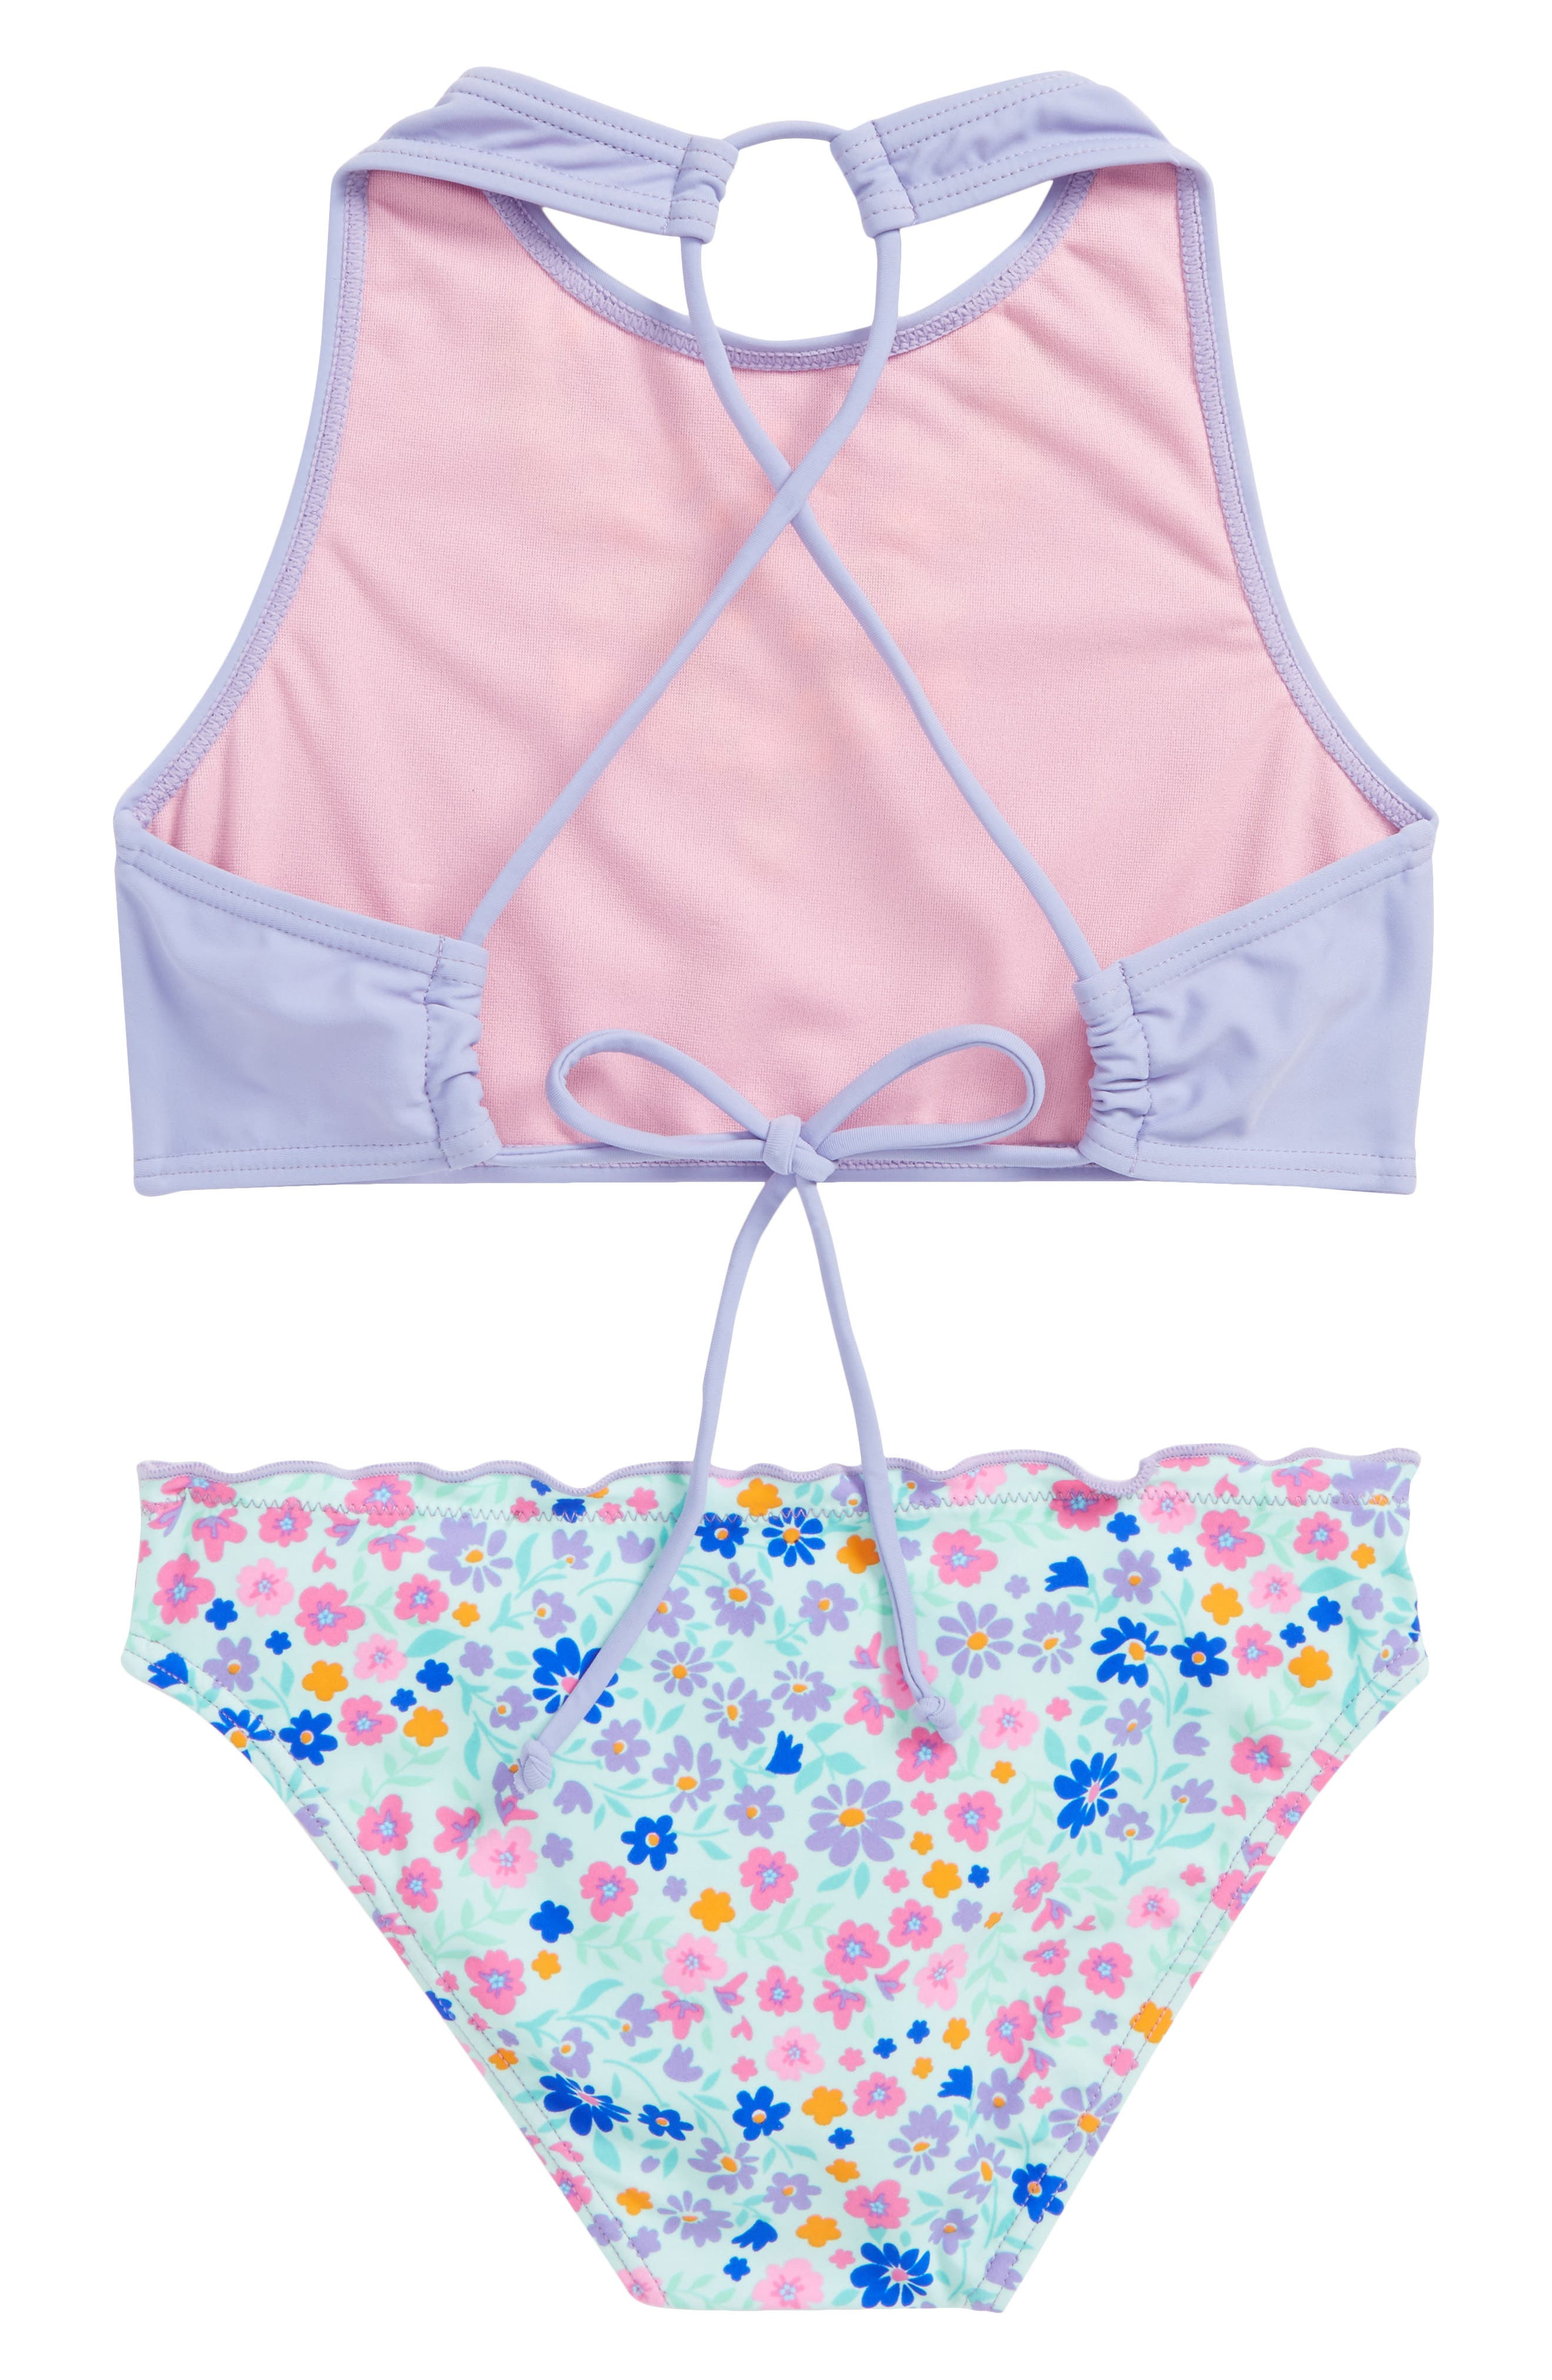 In Bloom Two-Piece Swimsuit,                             Alternate thumbnail 2, color,                             Deep Periwinkle Combo